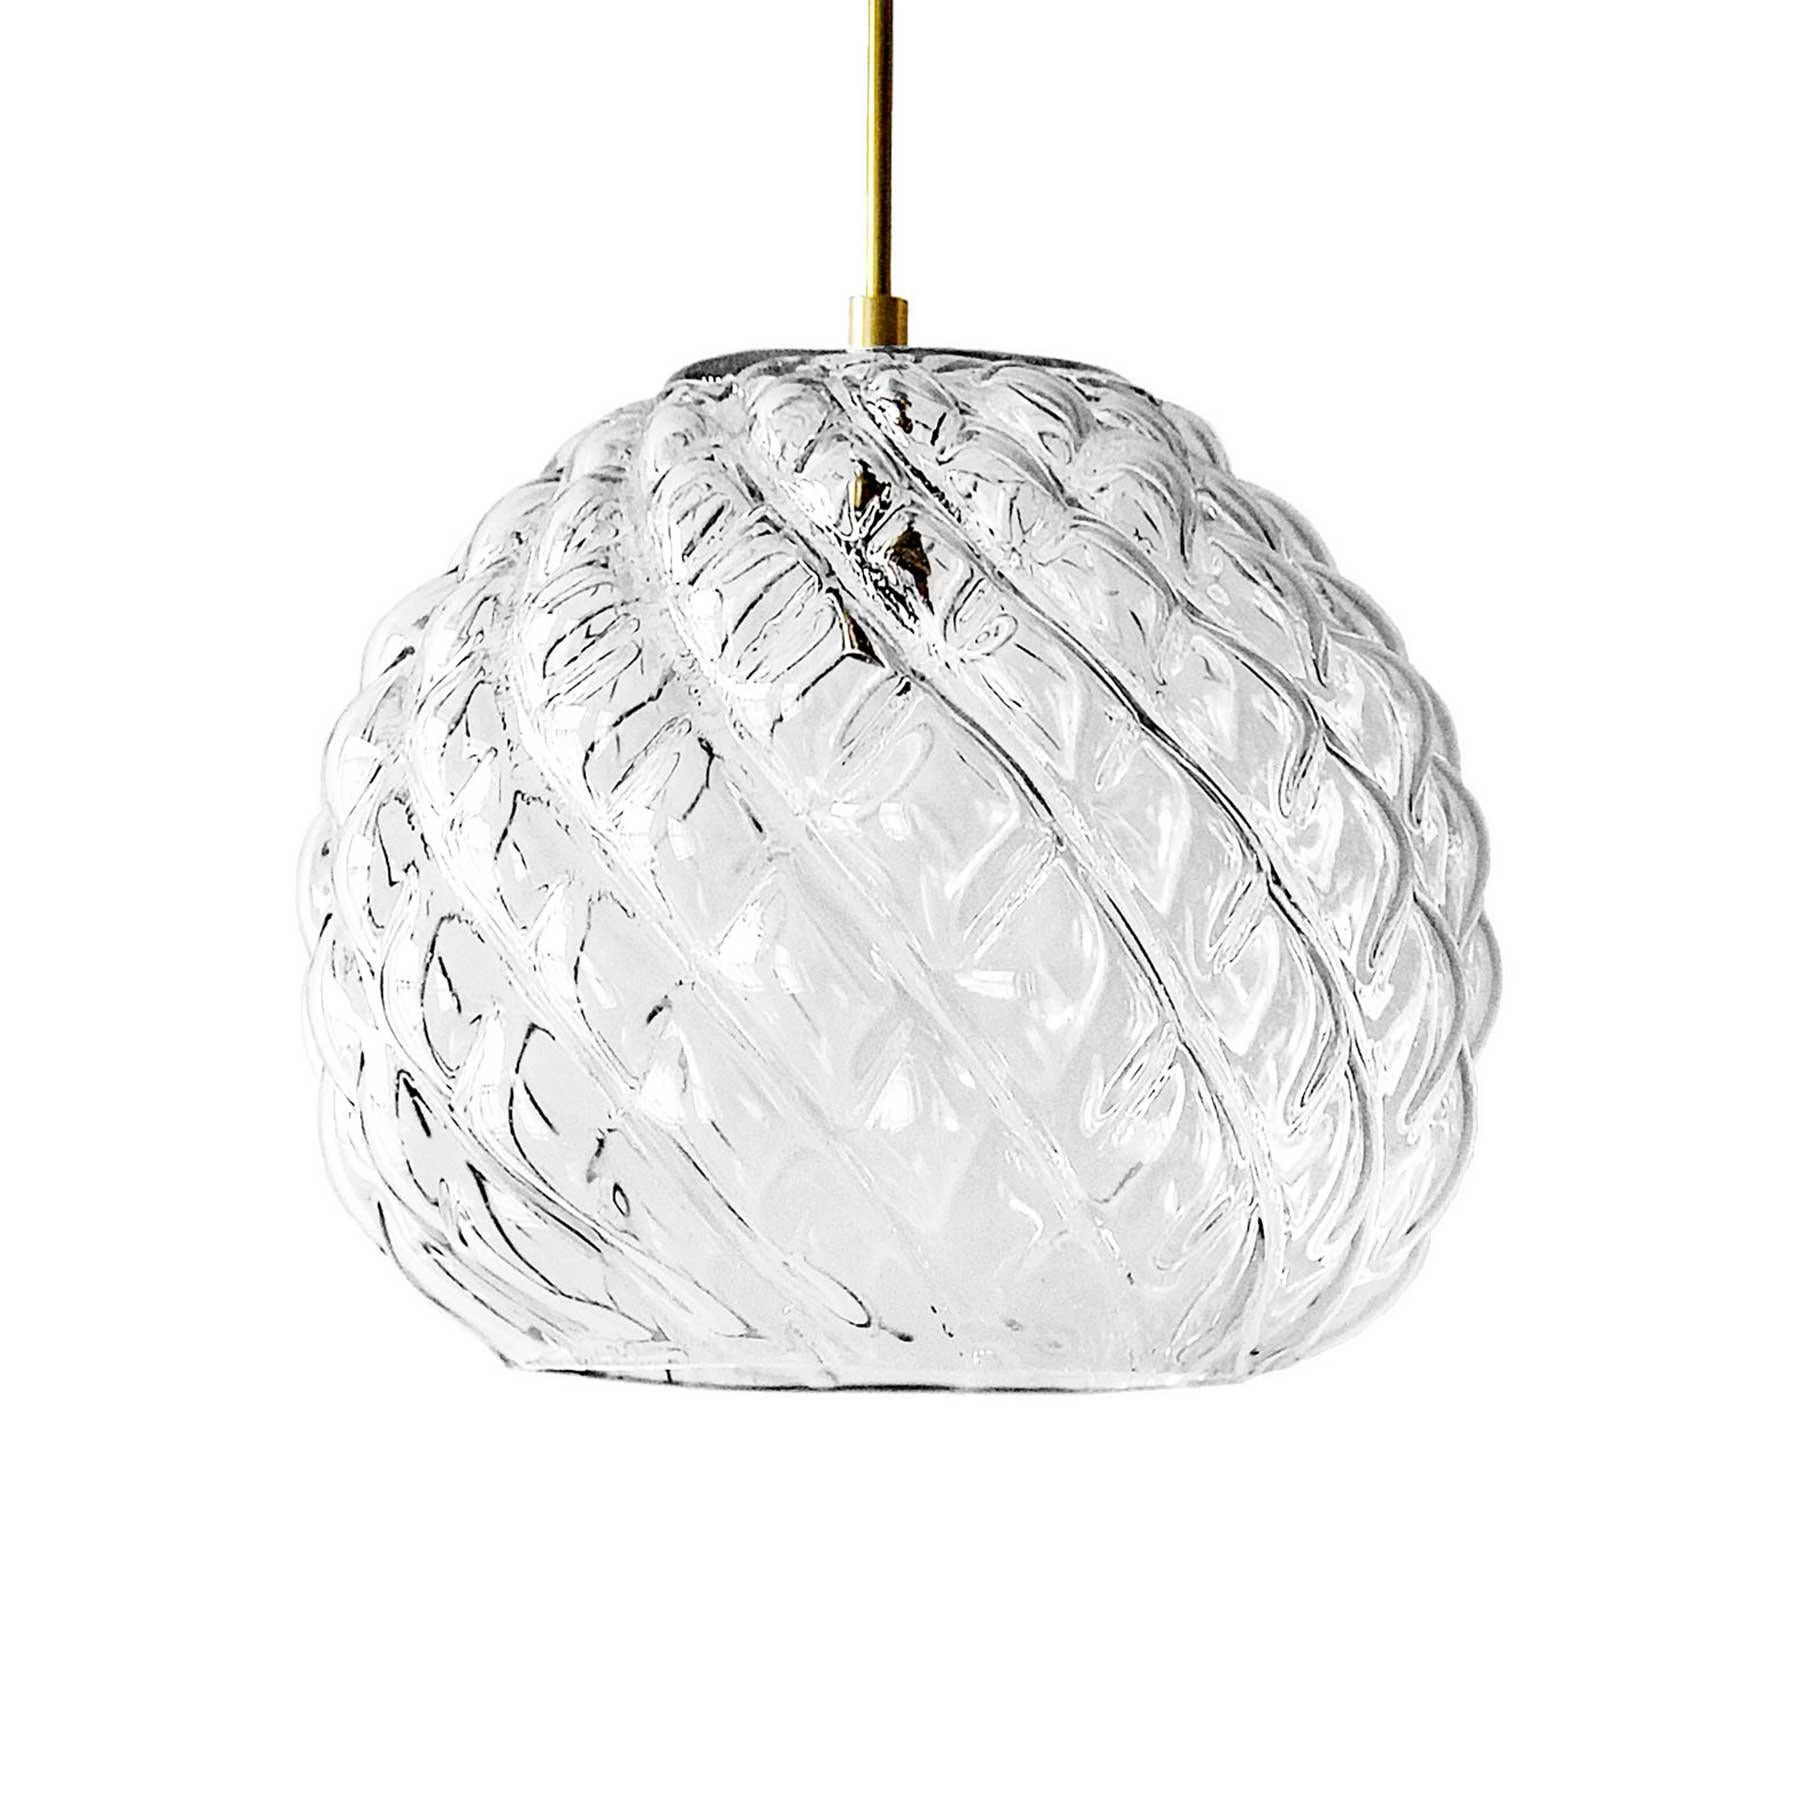 Hand Blown Glass Pendant, Clear Glass, Cuishe, Agave Lighting Collection